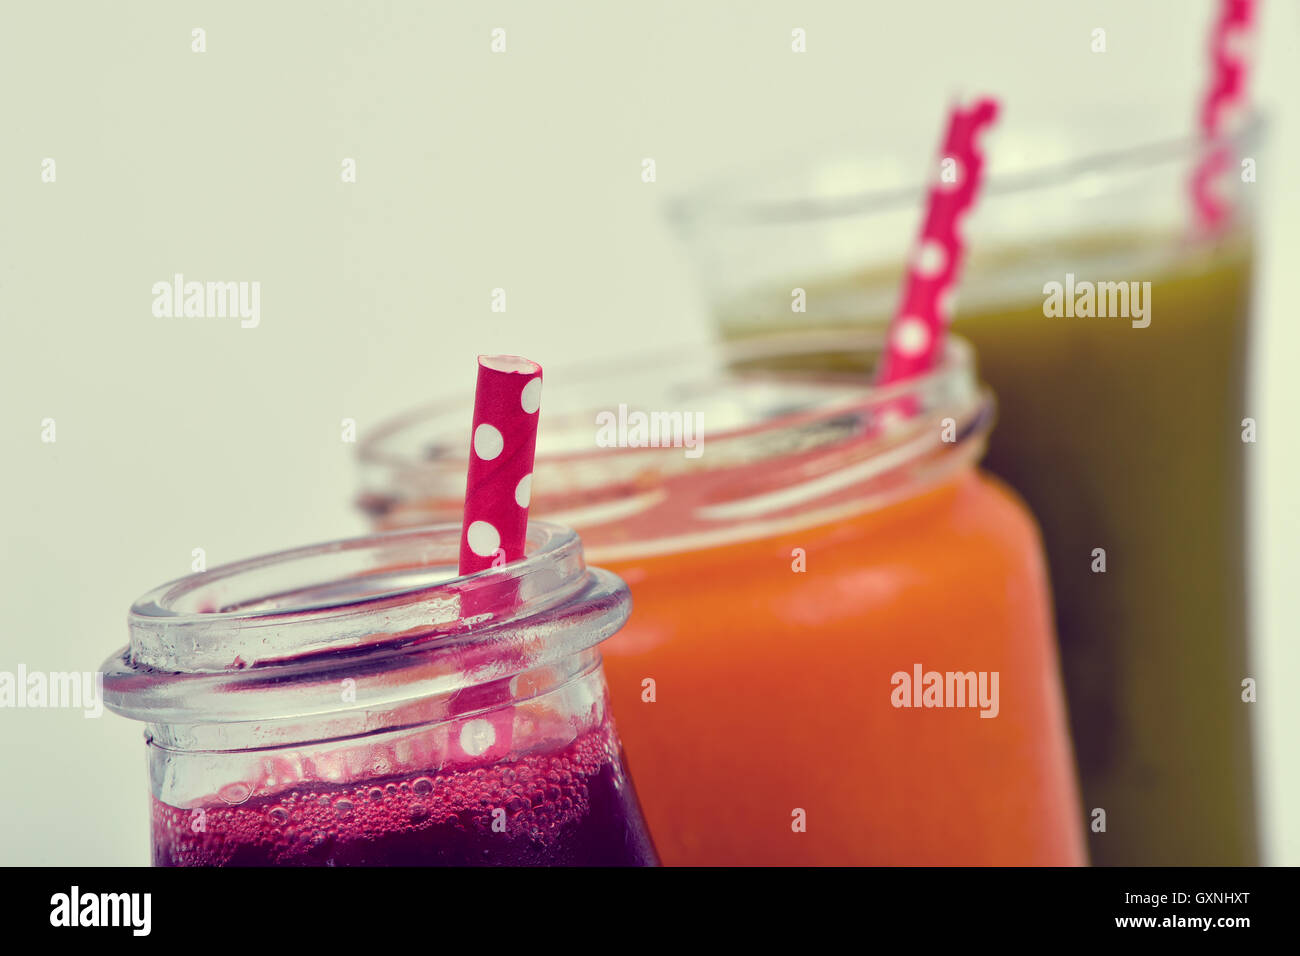 closeup of three different fresh smoothies served in a glass, a glass jar and a glass bottle with red drinking straws Stock Photo